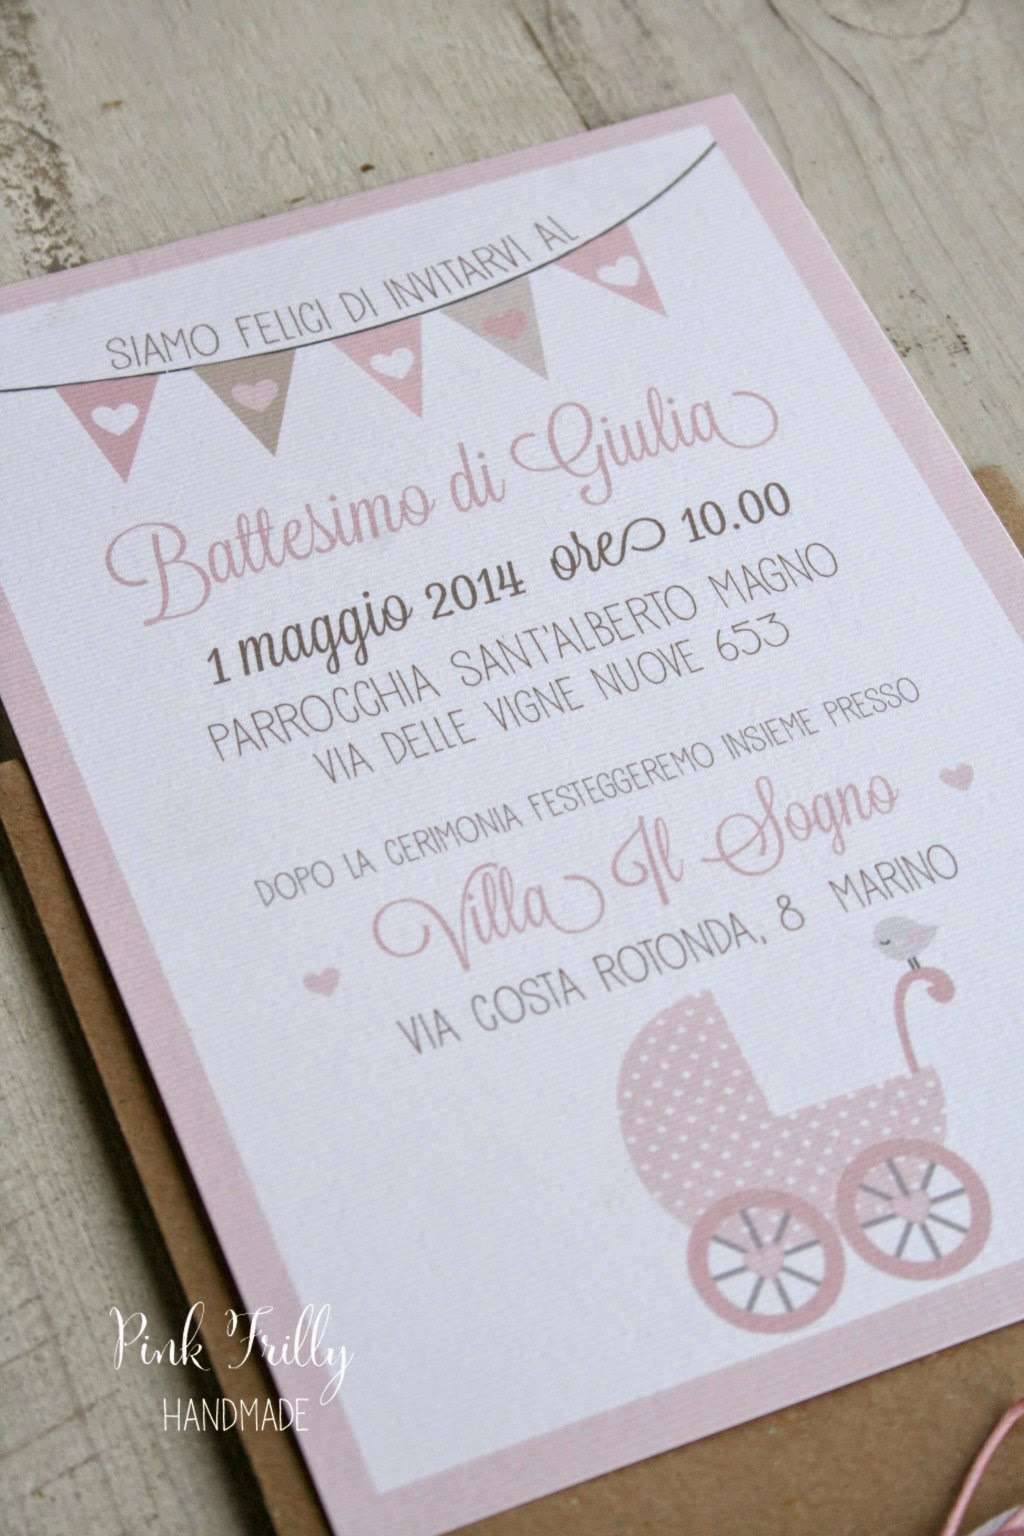 Souvent Pink Frilly: Un battesimo col cuore MG61